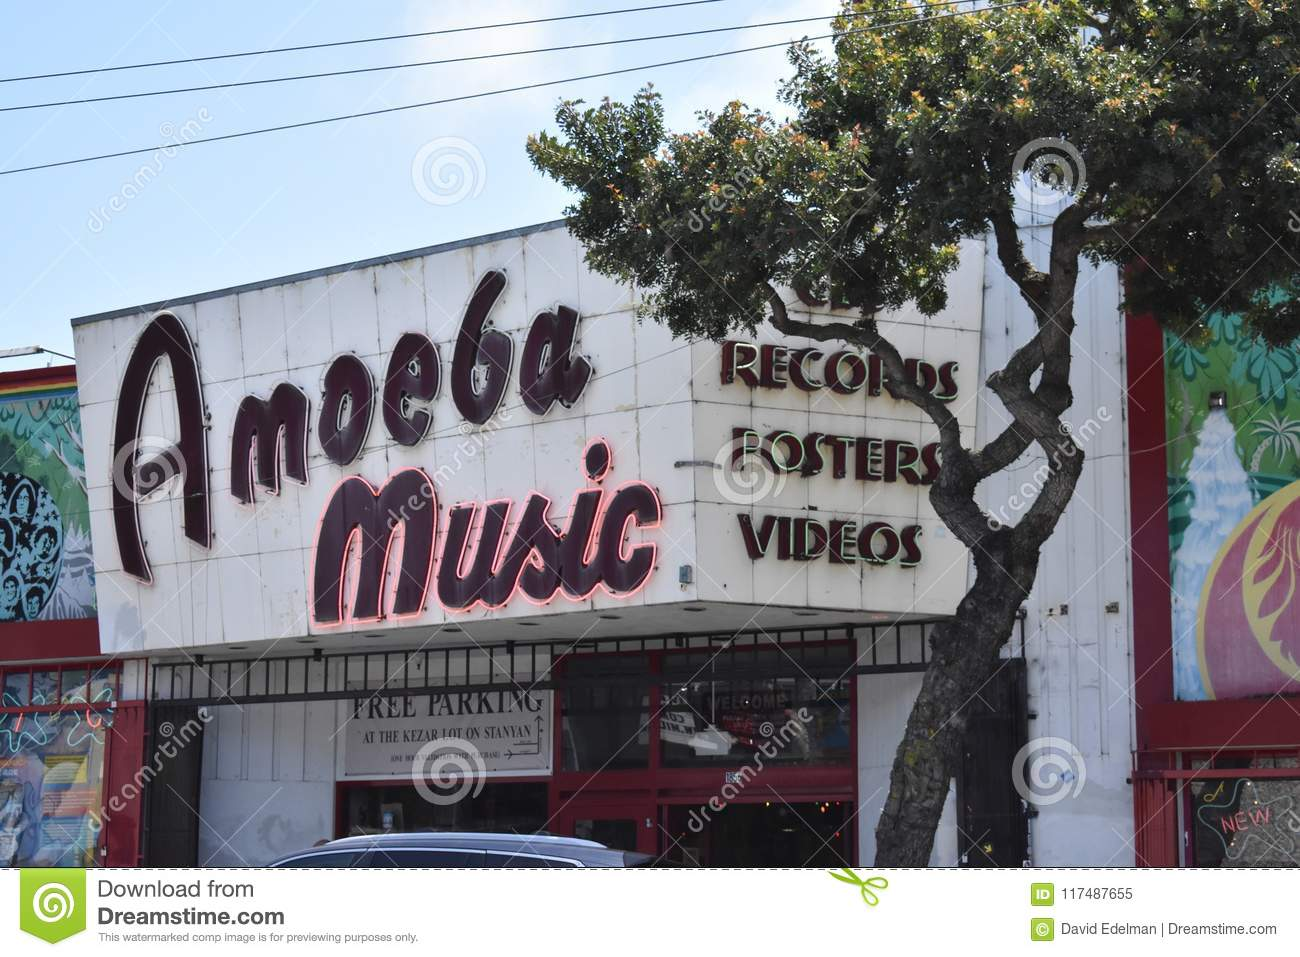 From Park Bowl alley to Amoeba Music, 1.